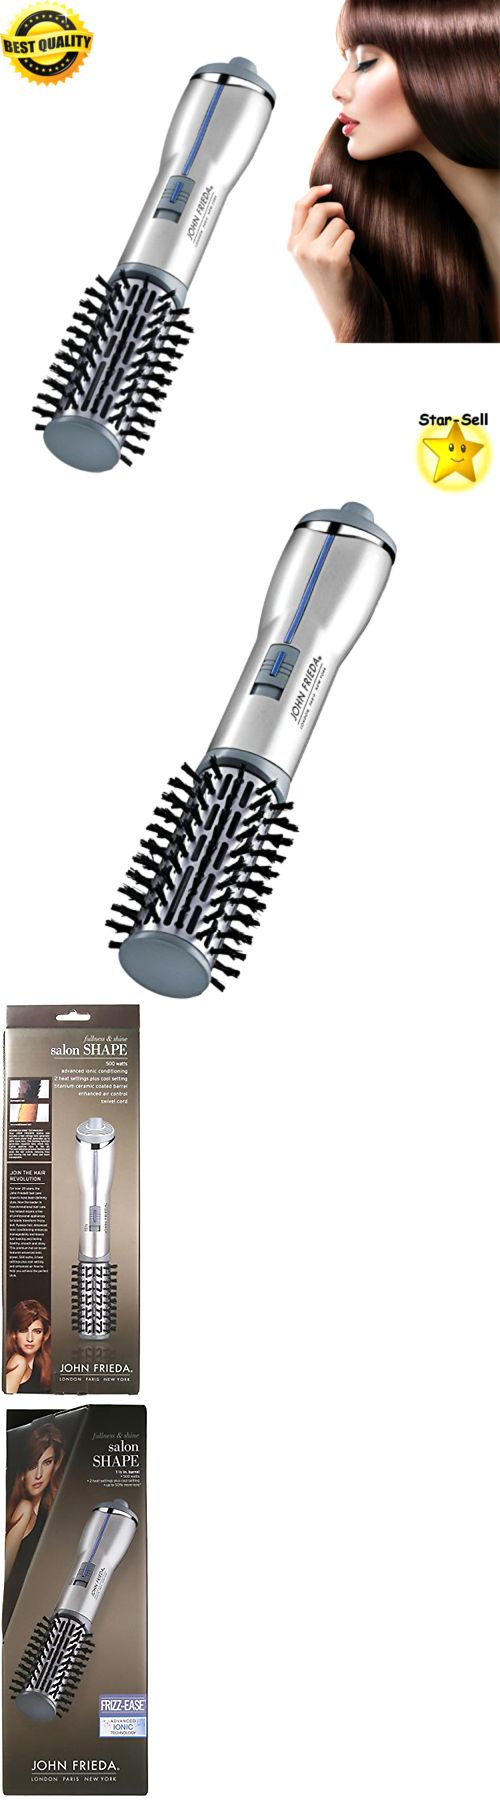 Brushes and Combs: Hot Air Brush Salon Hair Dryer Blower Styling Curling Hot Air Curler Heat Brush -> BUY IT NOW ONLY: $33.15 on eBay!